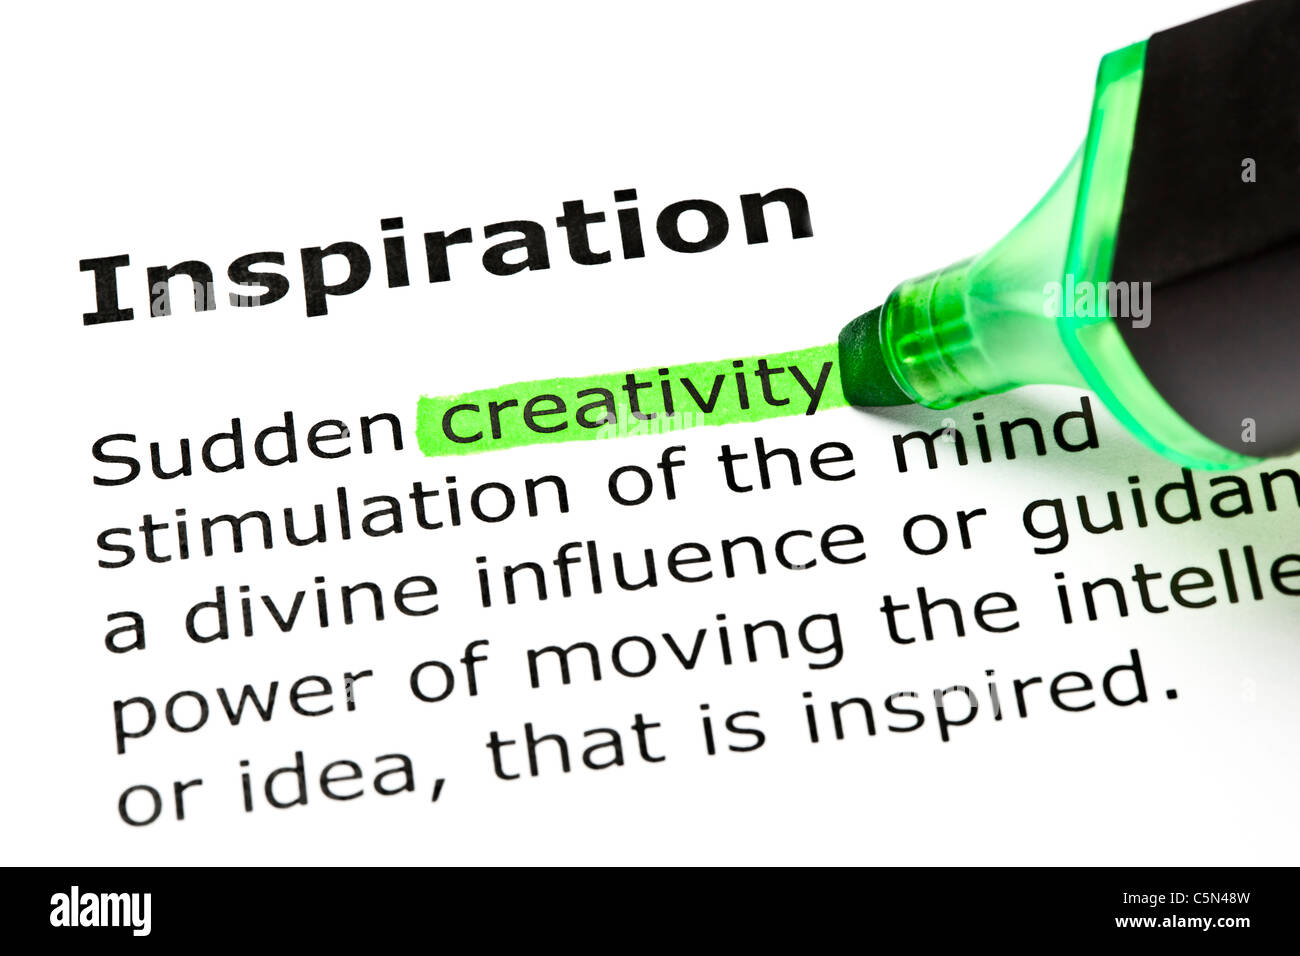 'Creativity' highlighted in green, under the heading 'Inspiration' - Stock Image